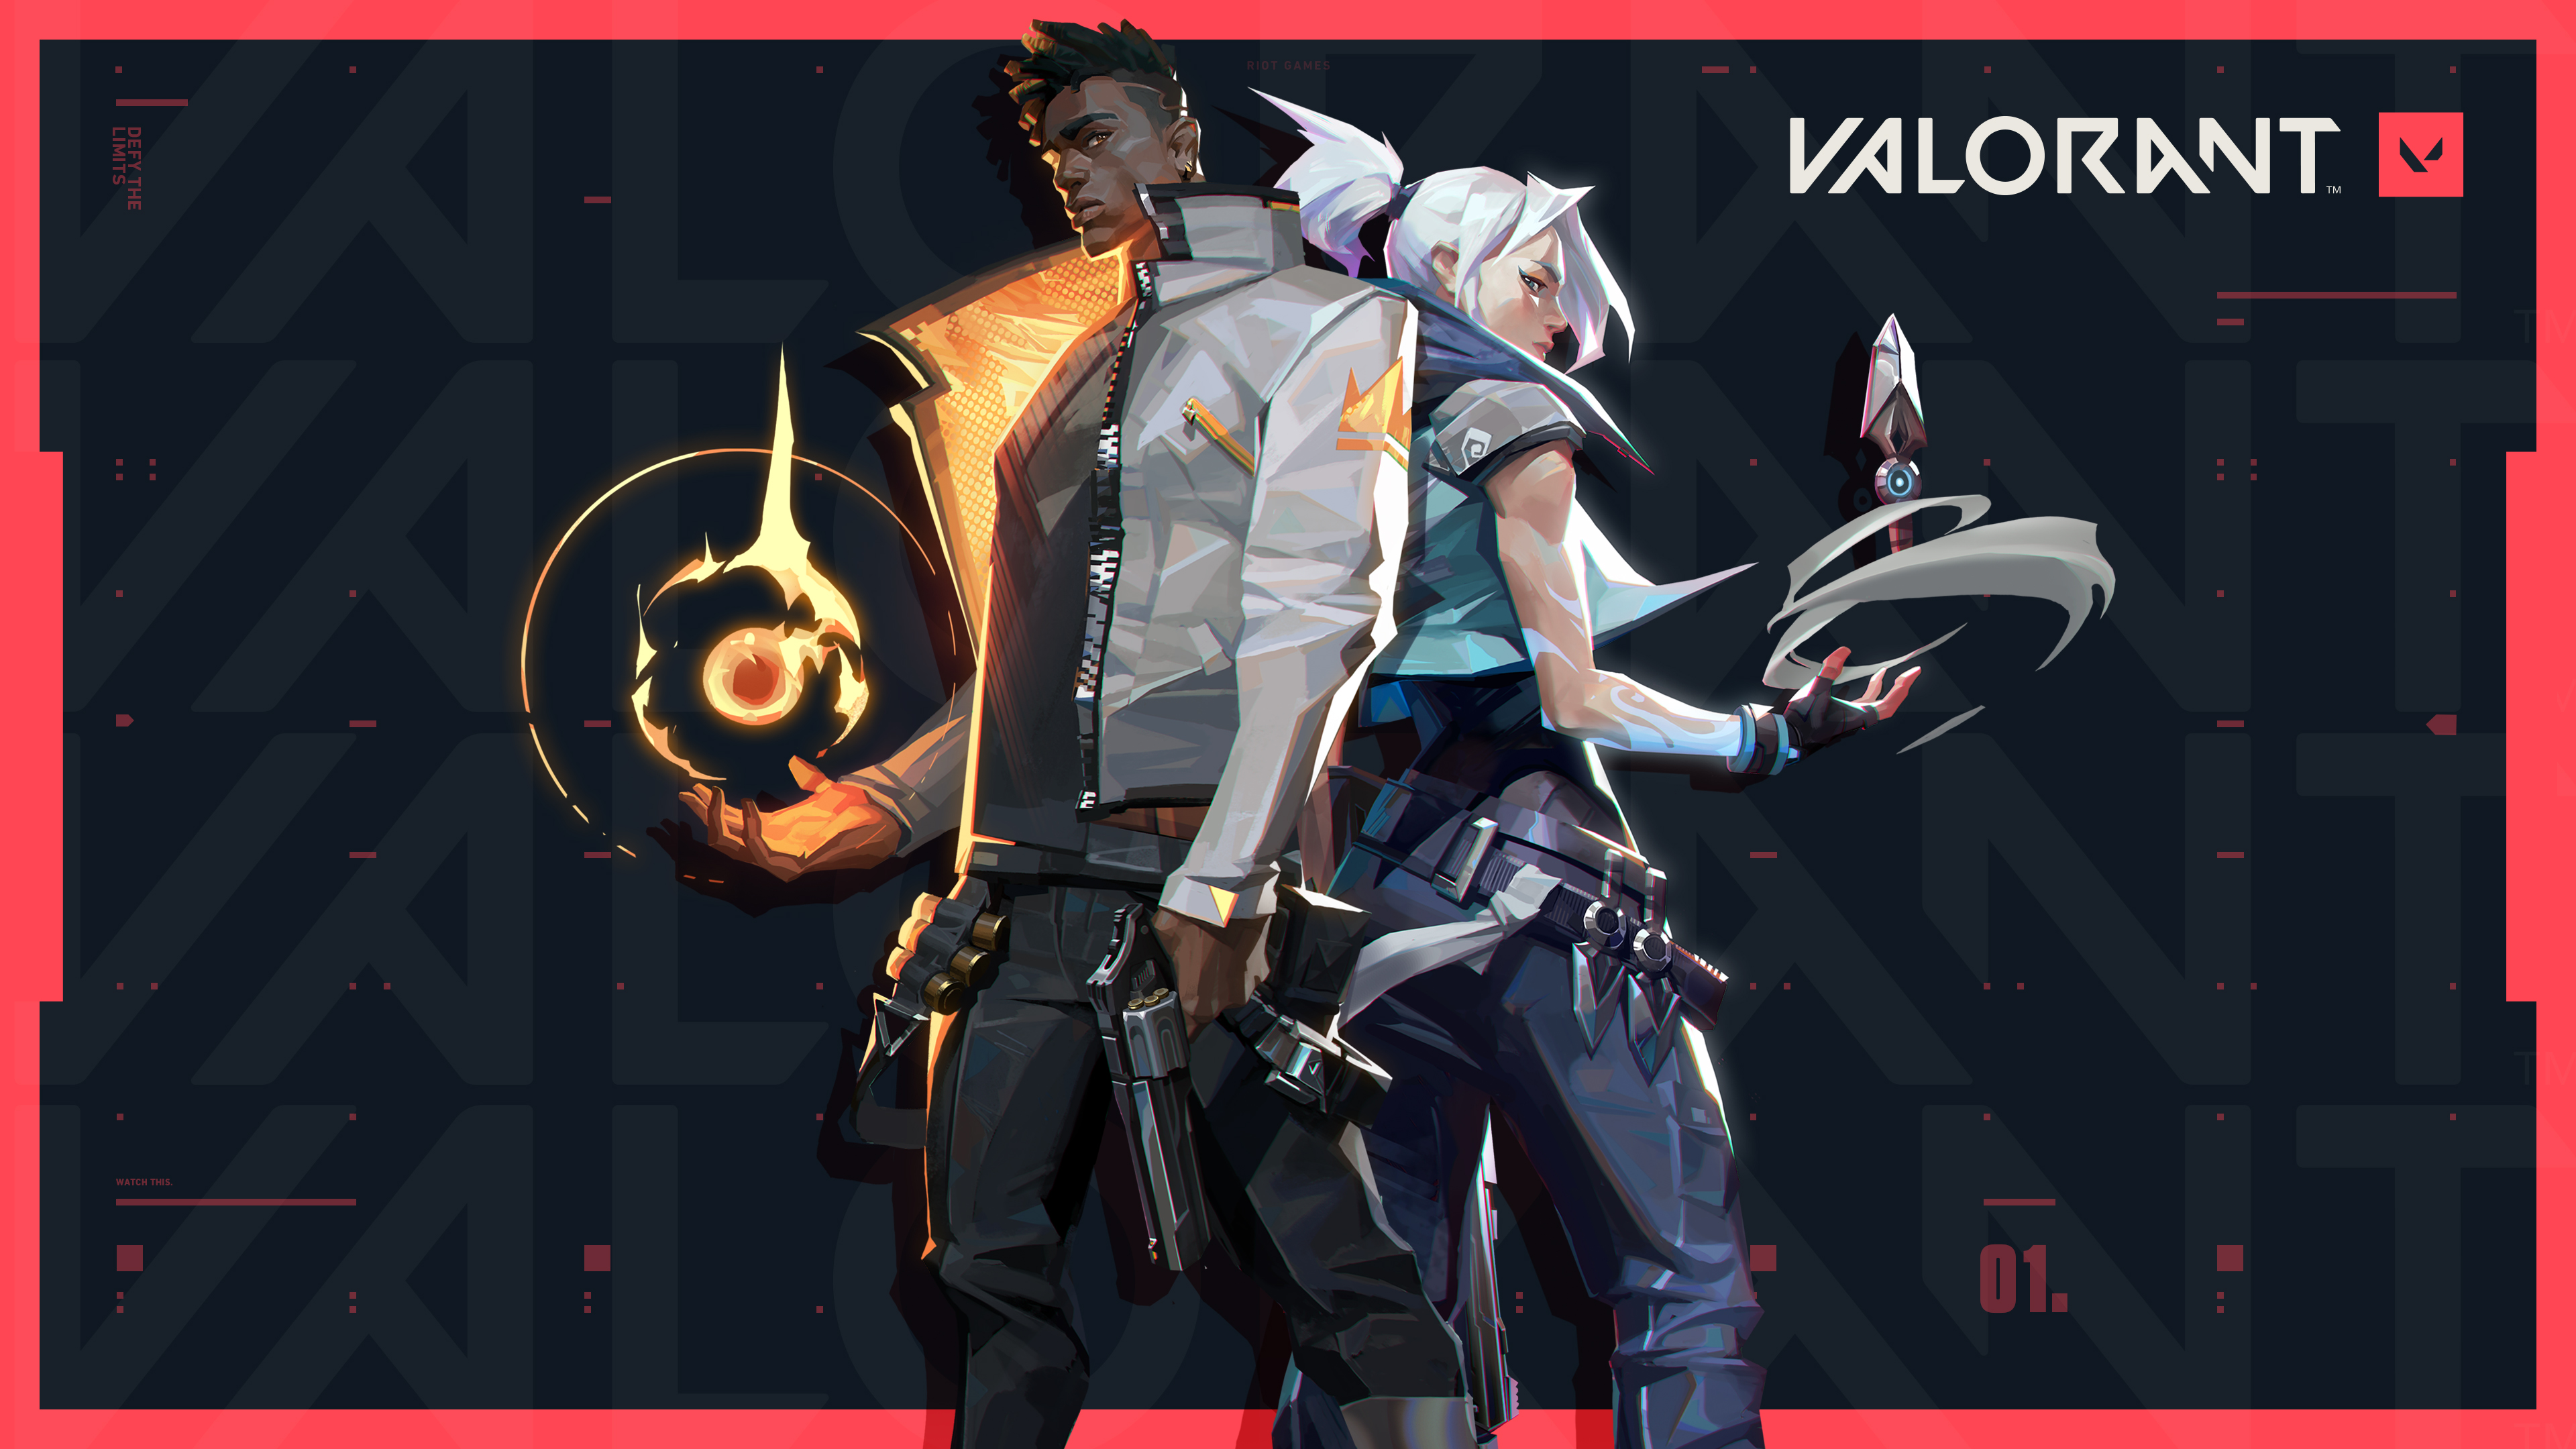 VALORANT will have four maps and 12 agents for summer release